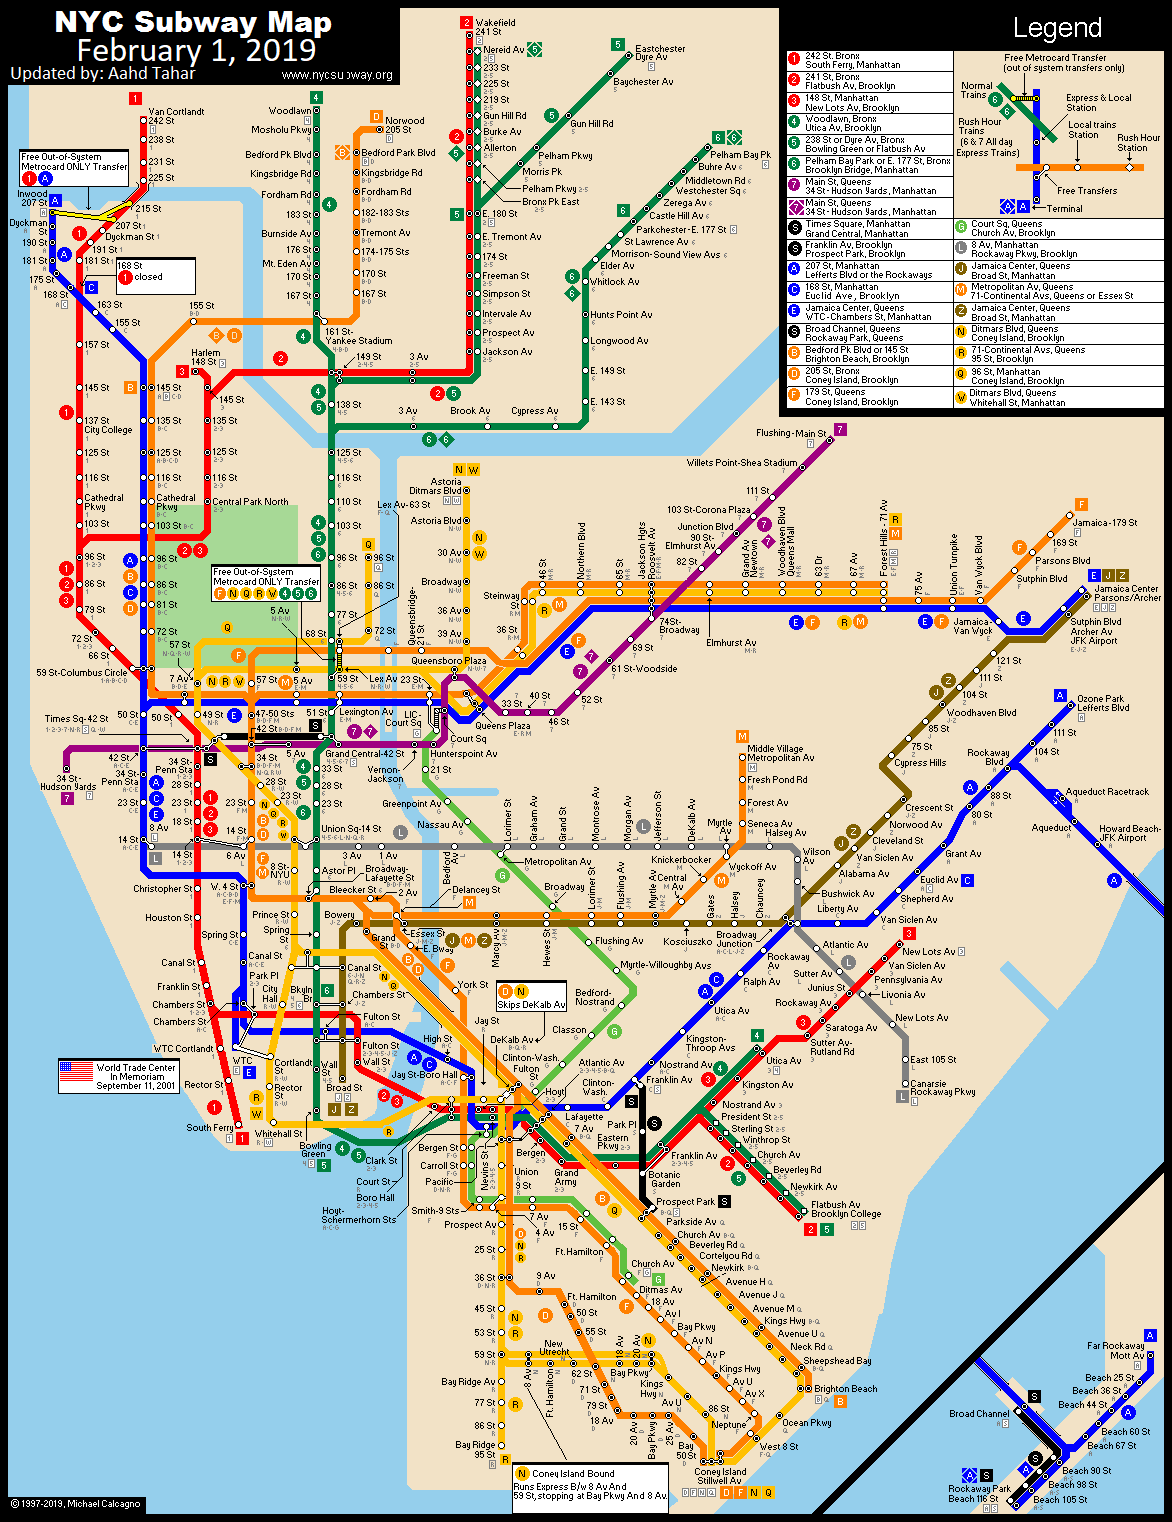 Mya Subway Map.Www Nycsubway Org New York City Subway Route Map By Michael Calcagno